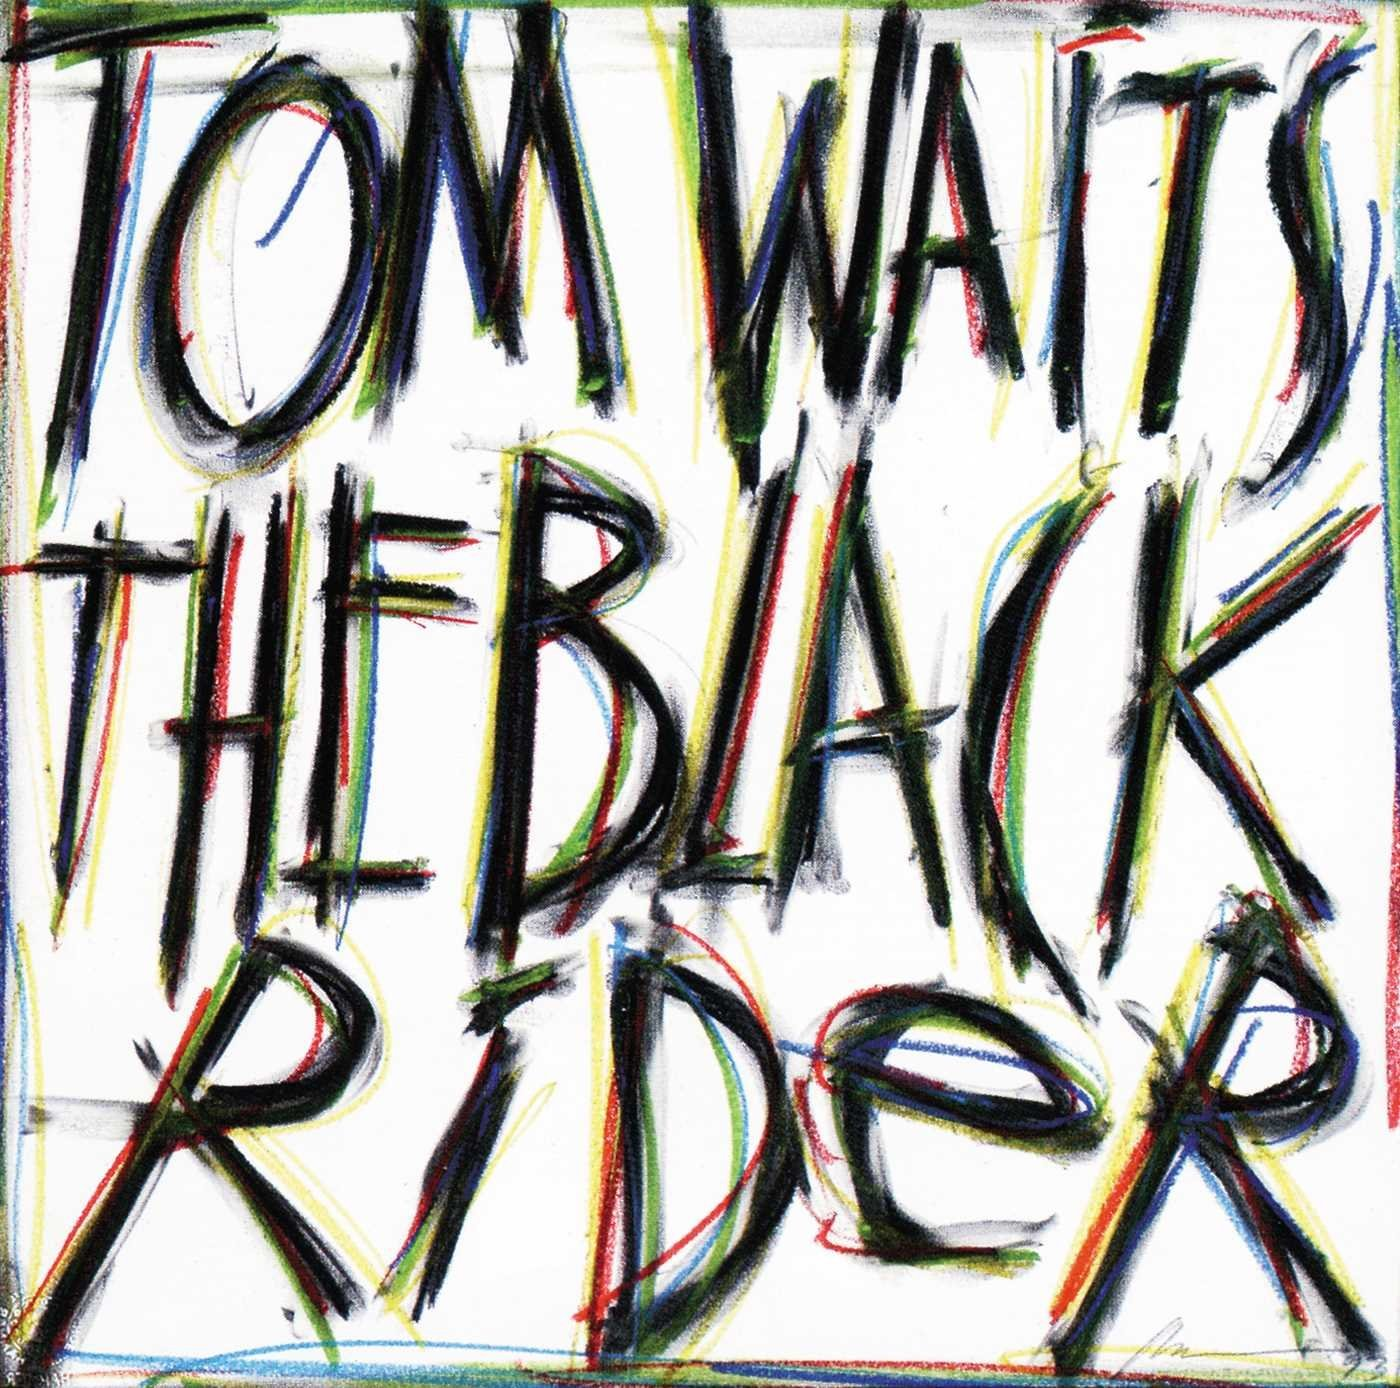 「November」収録アルバム『The Black Rider』/Tom Waits